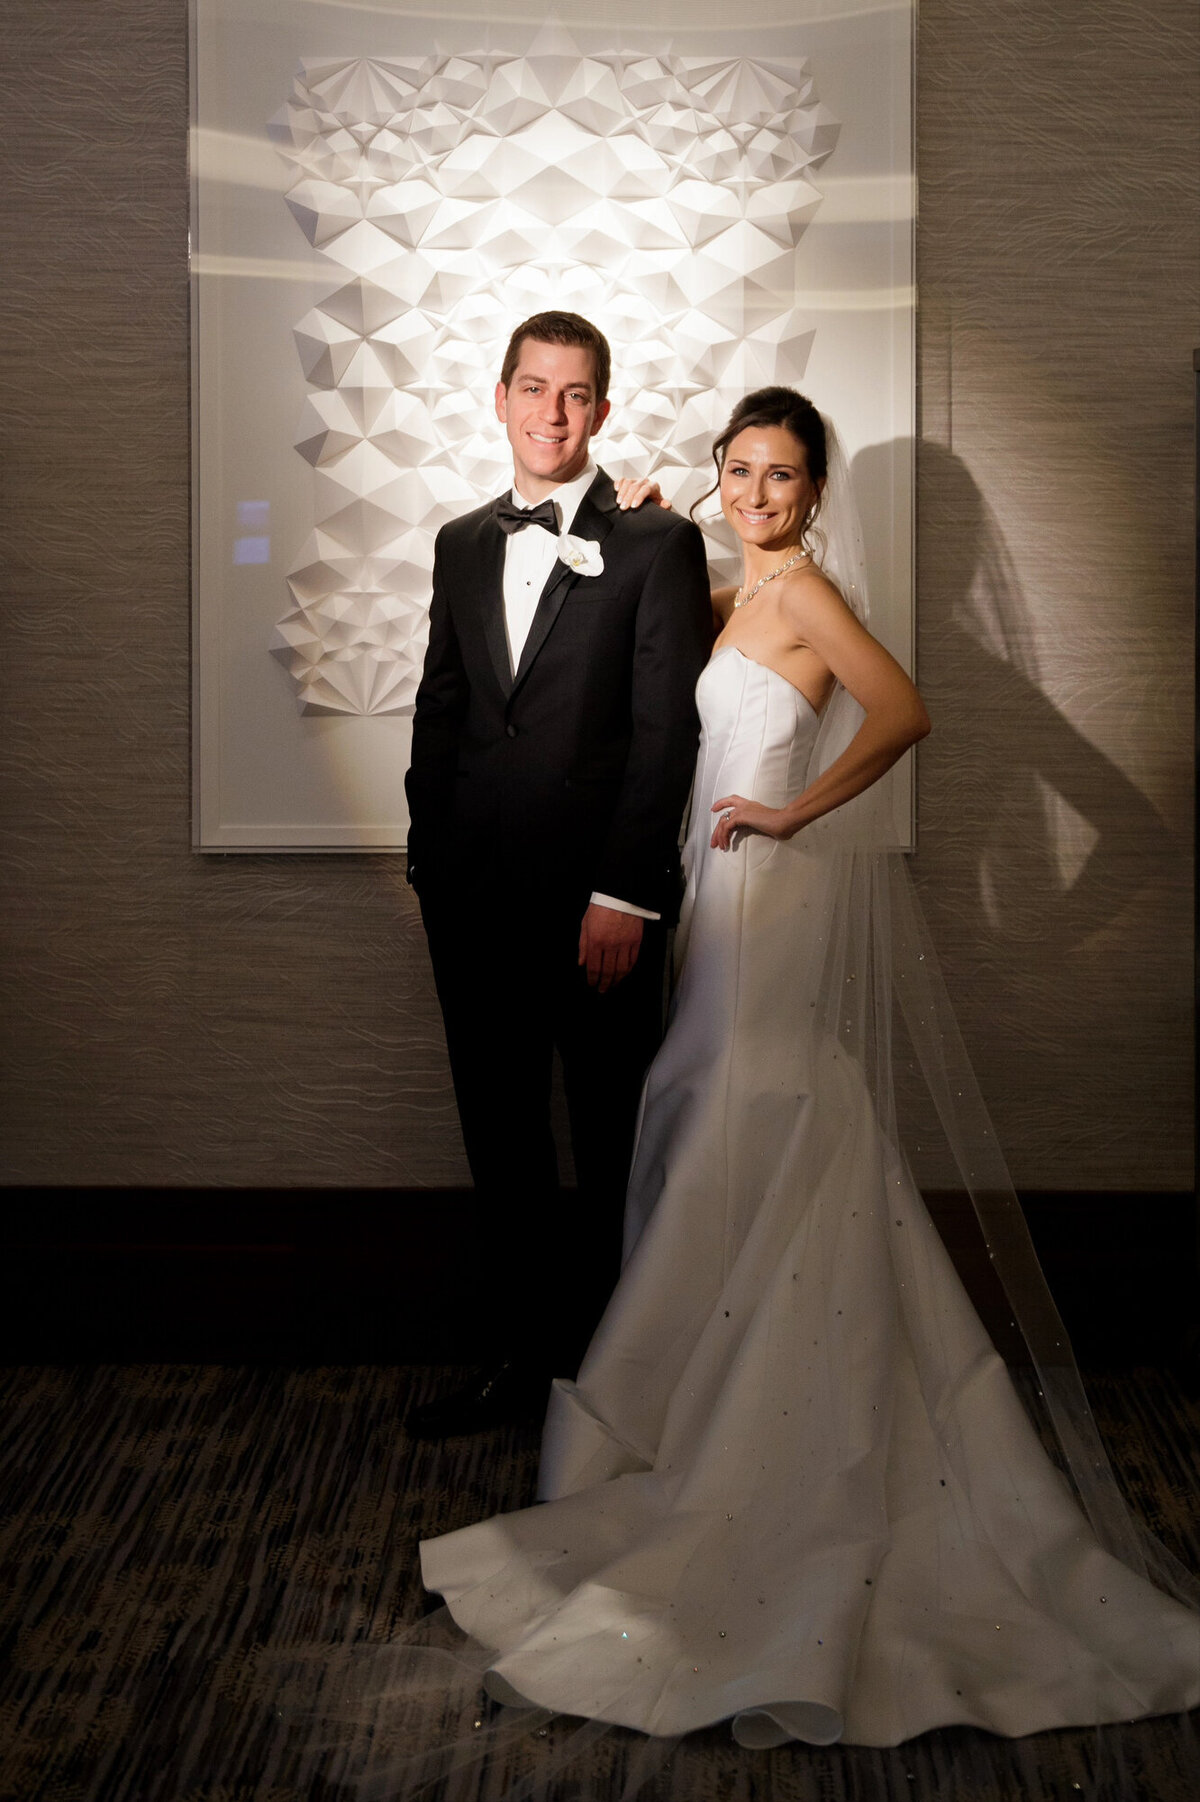 039_EricaBrandon_Wedding